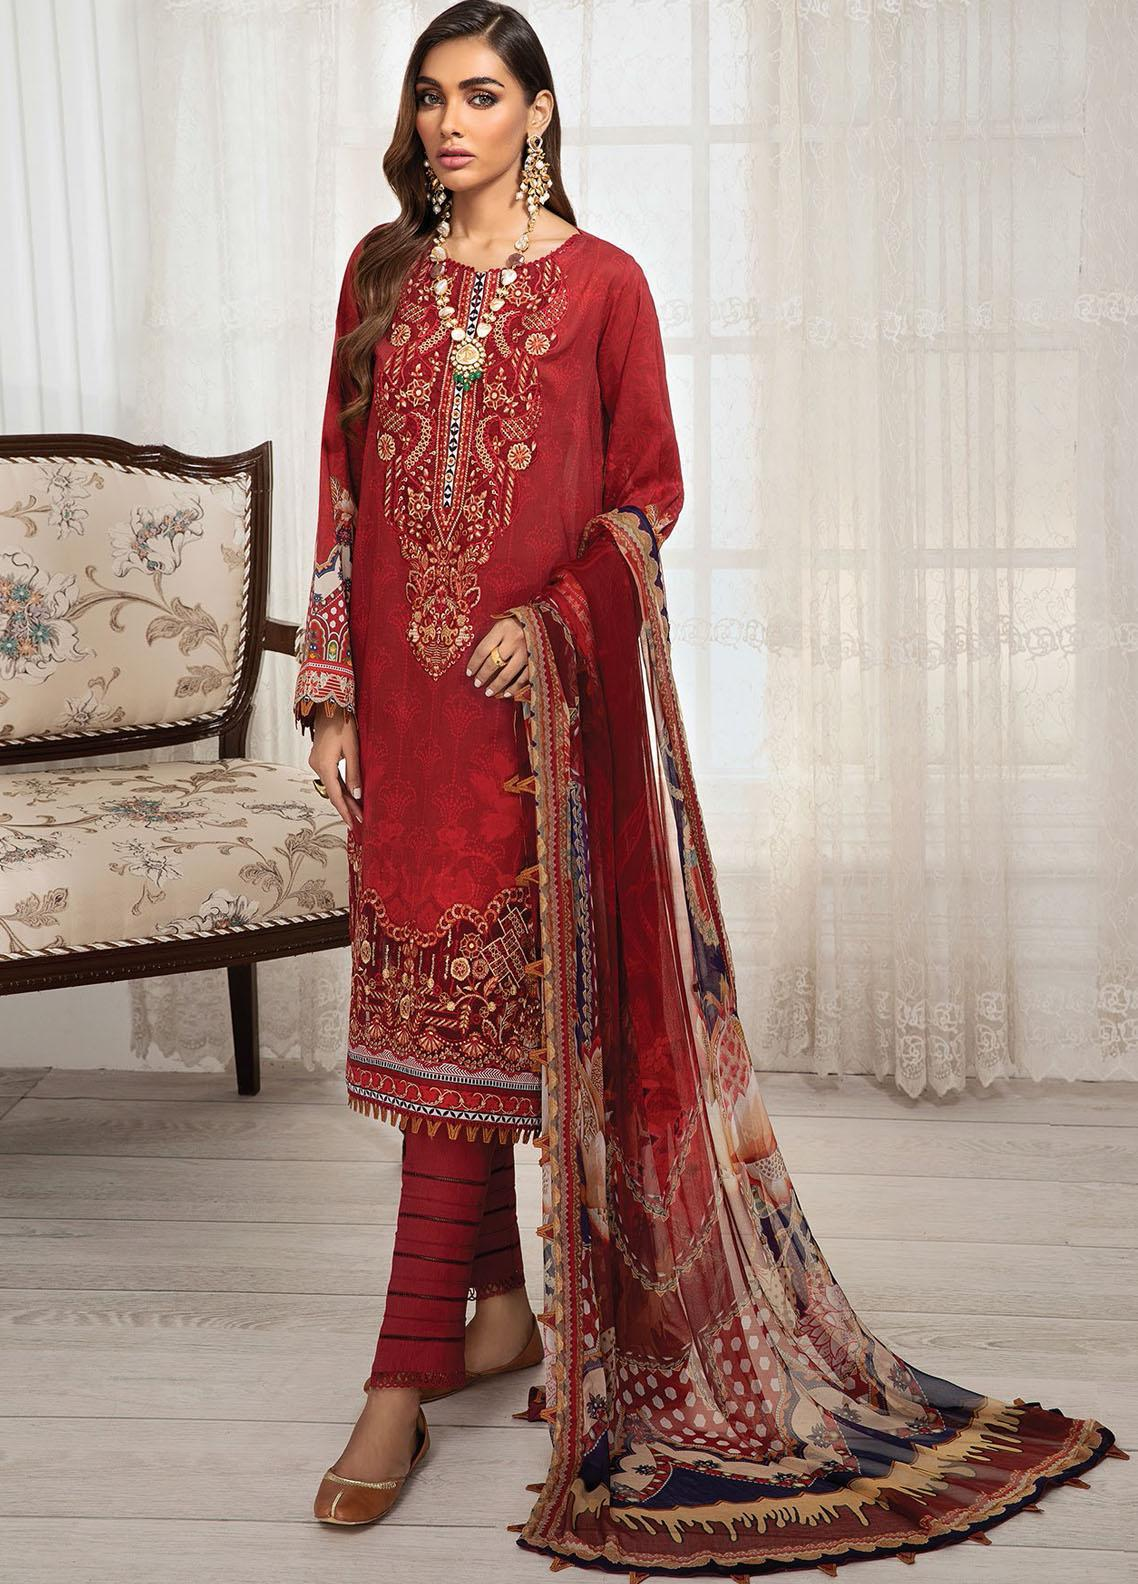 Farasha Embroidered Lawn Suits Unstitched 3 Piece FSH21-L3 10 Firethorn - Festive Collection